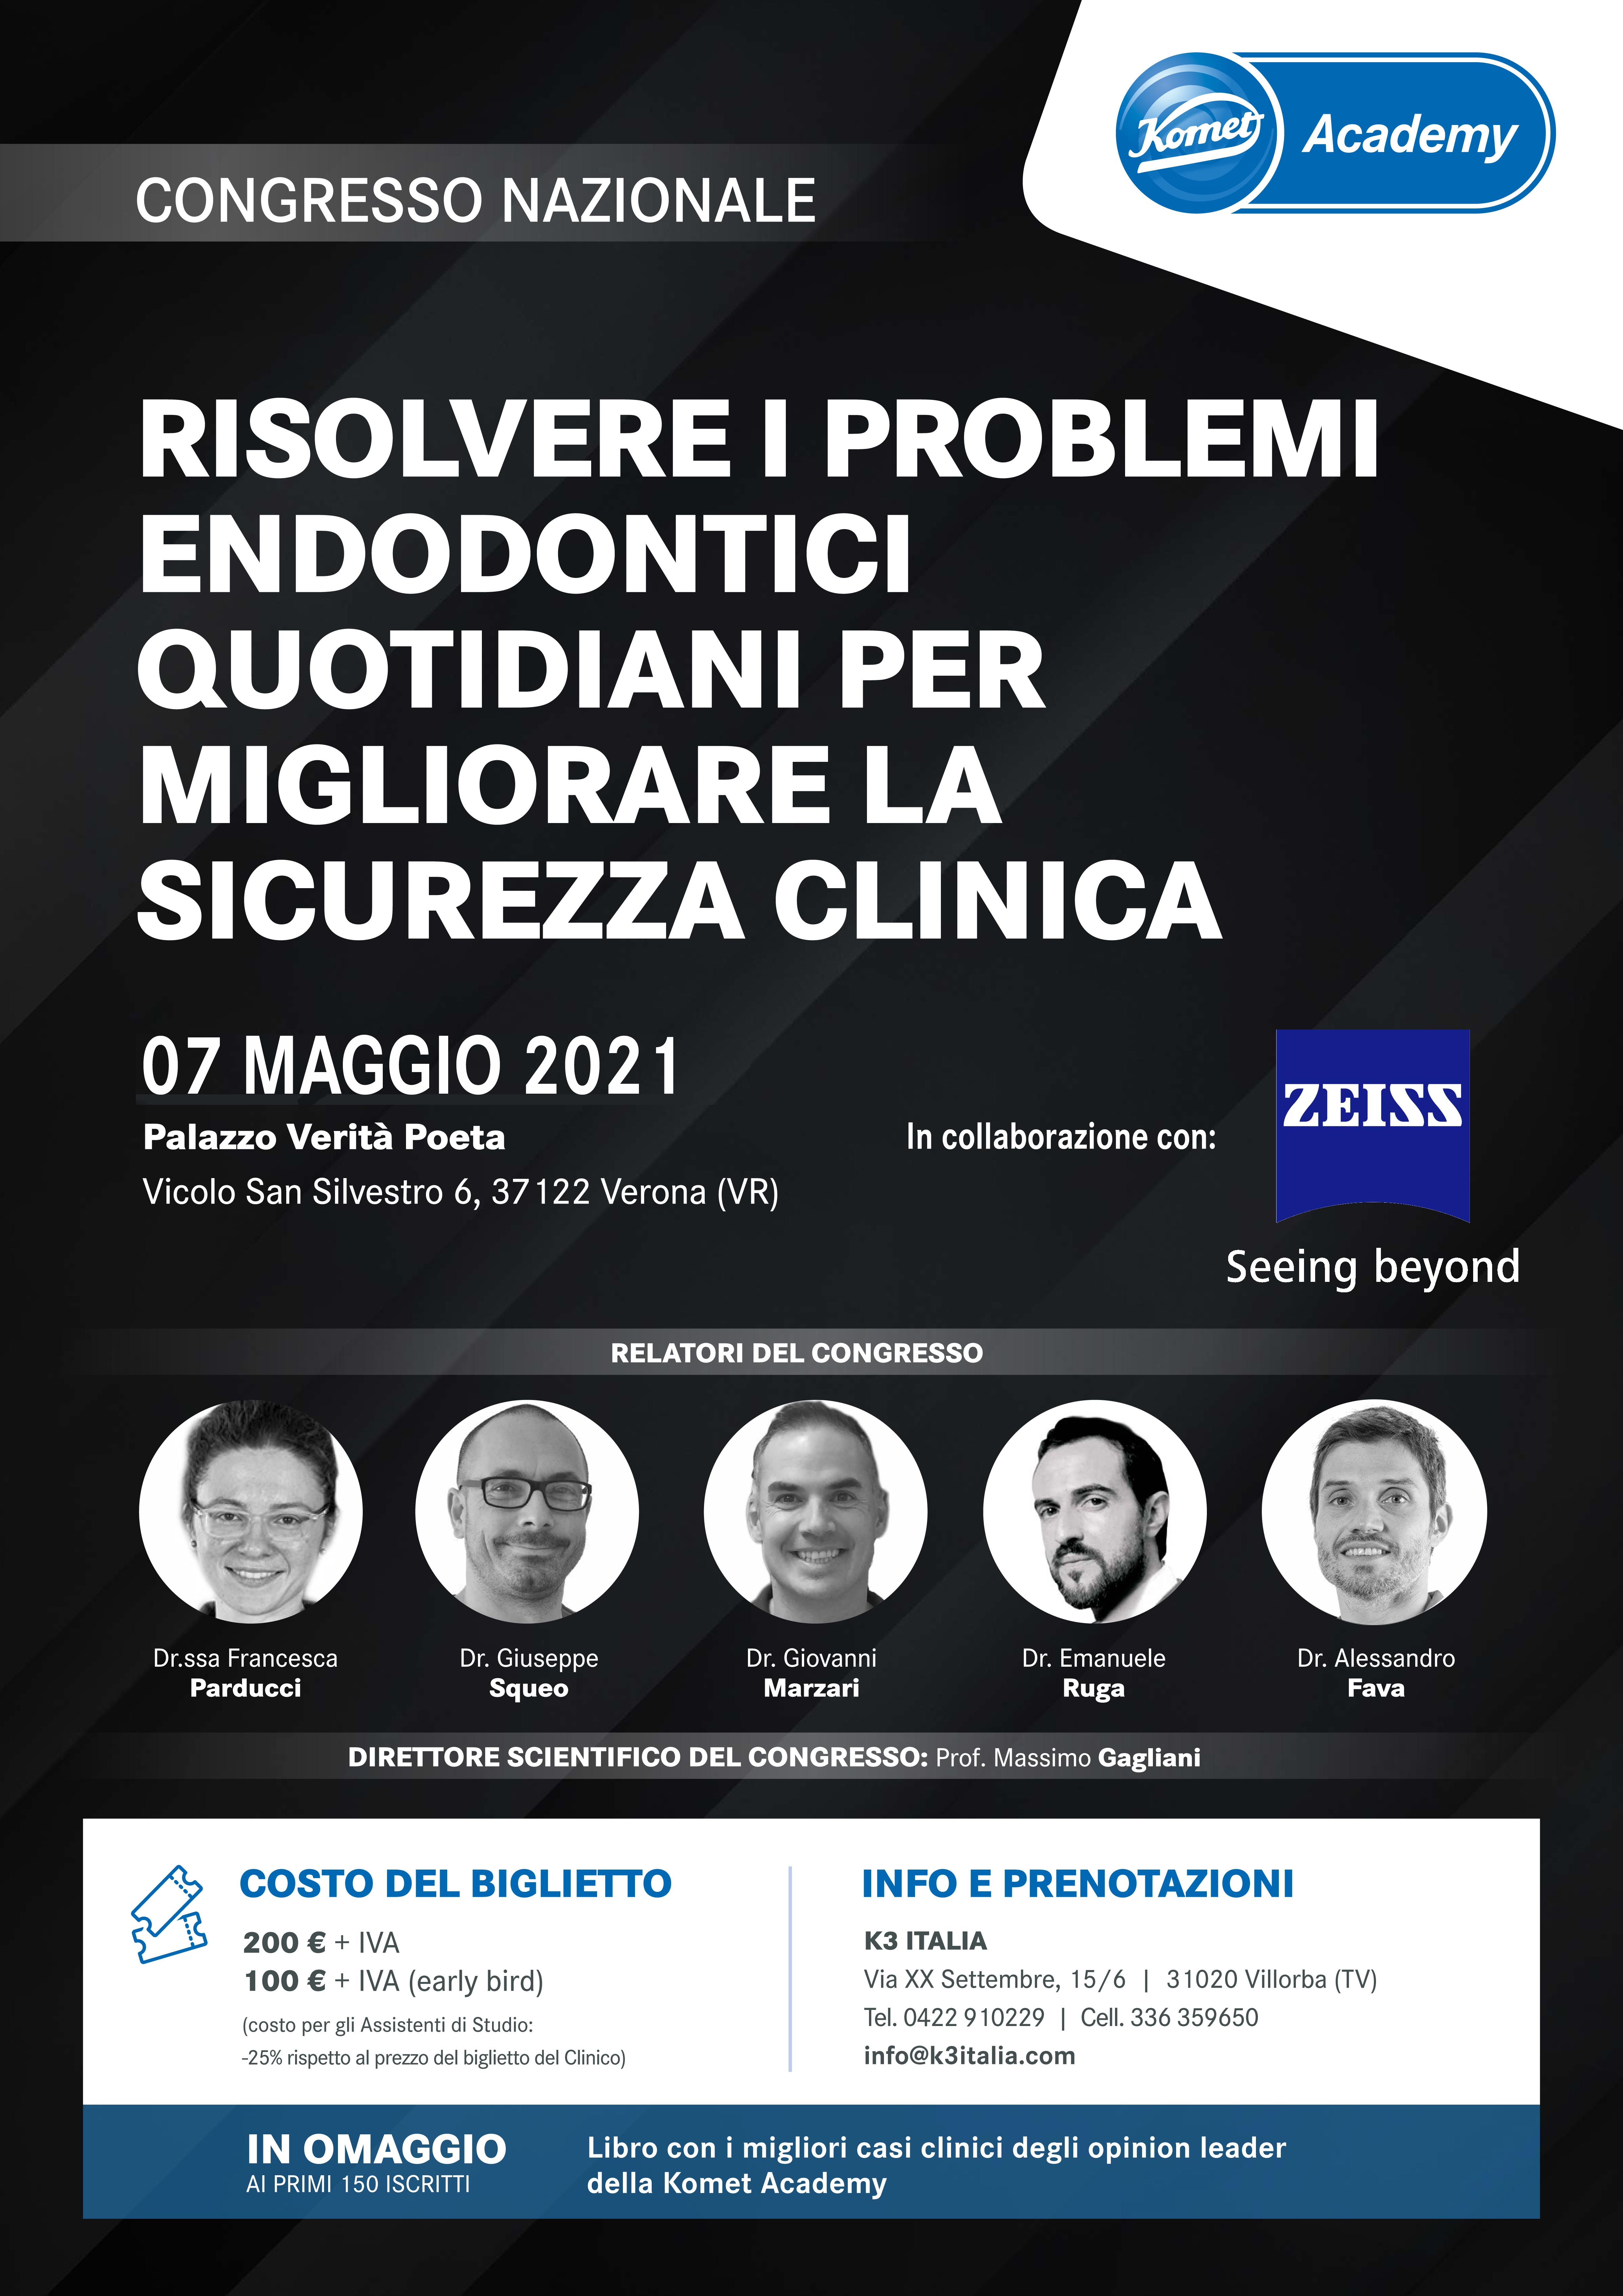 Congresso Endo_v2 Powered by Zeiss small 7 maggio 2021